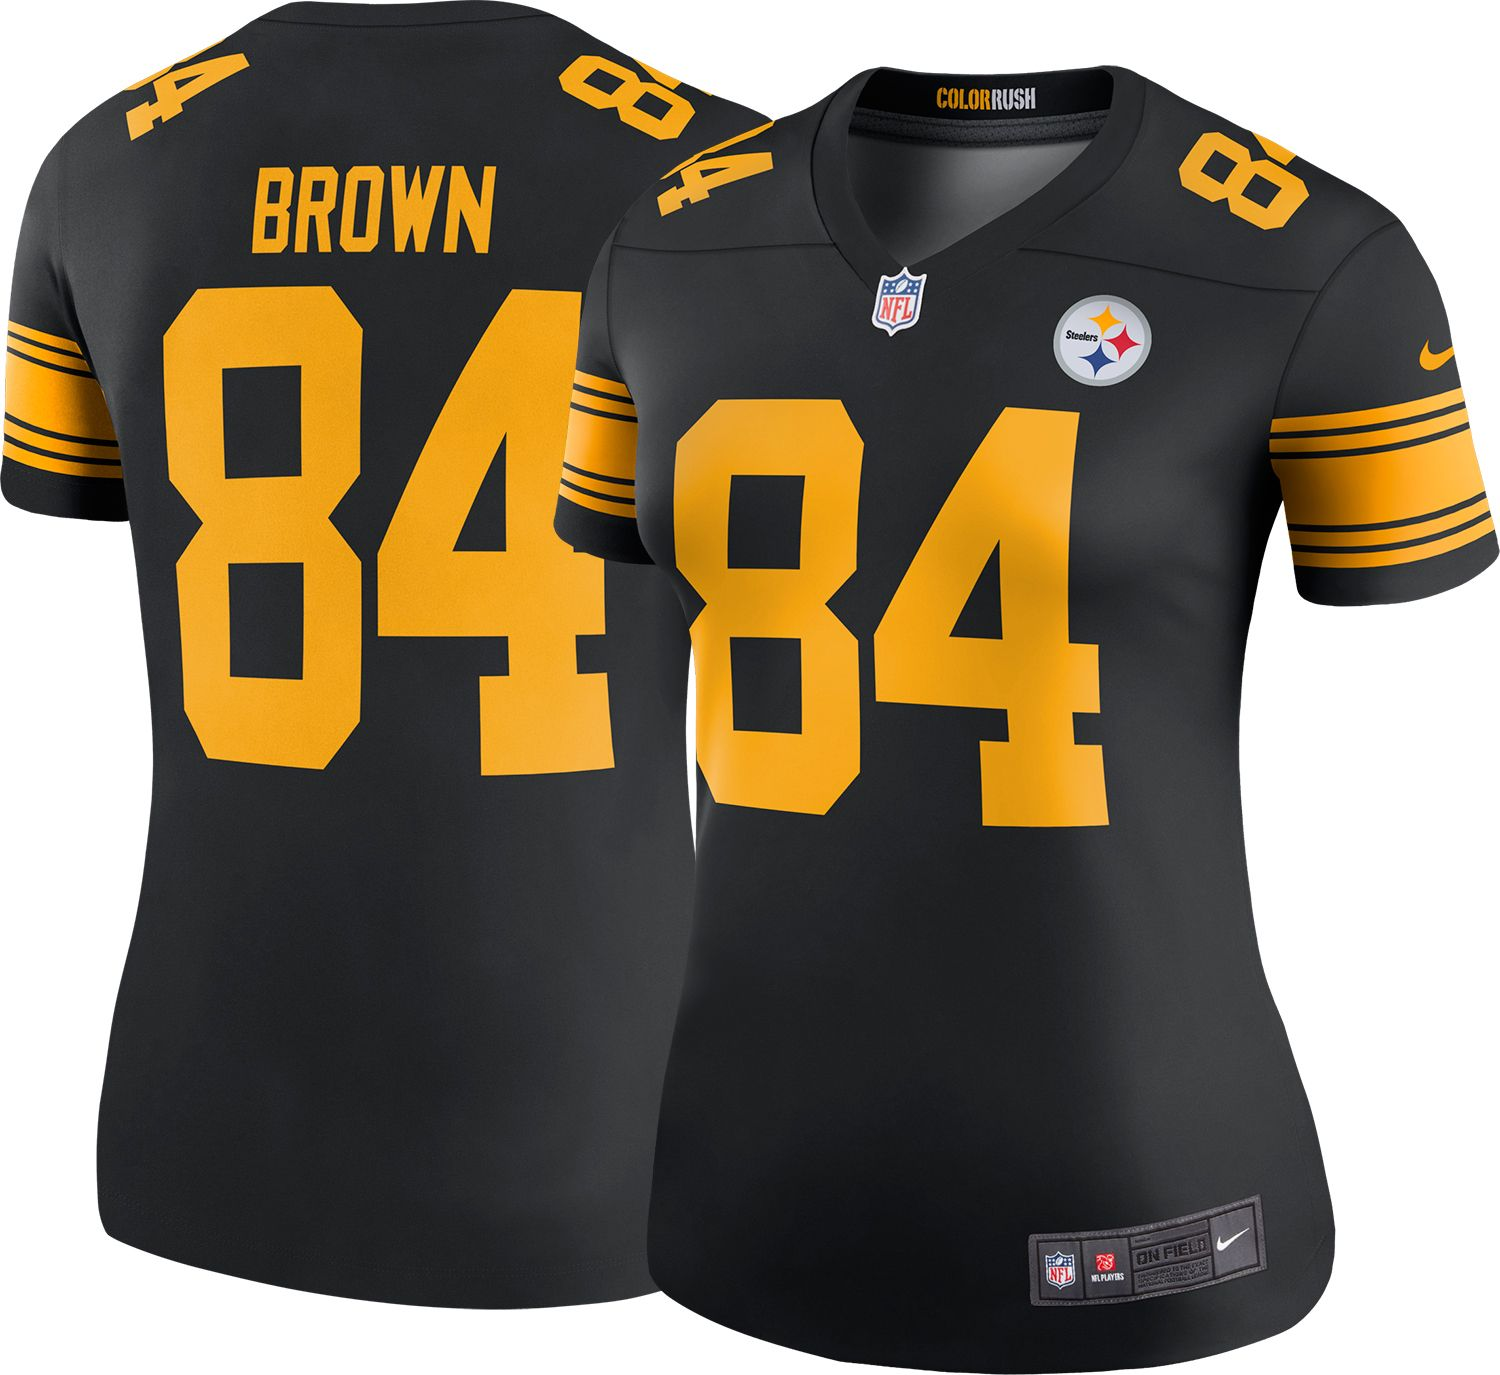 steelers color rush women's jersey